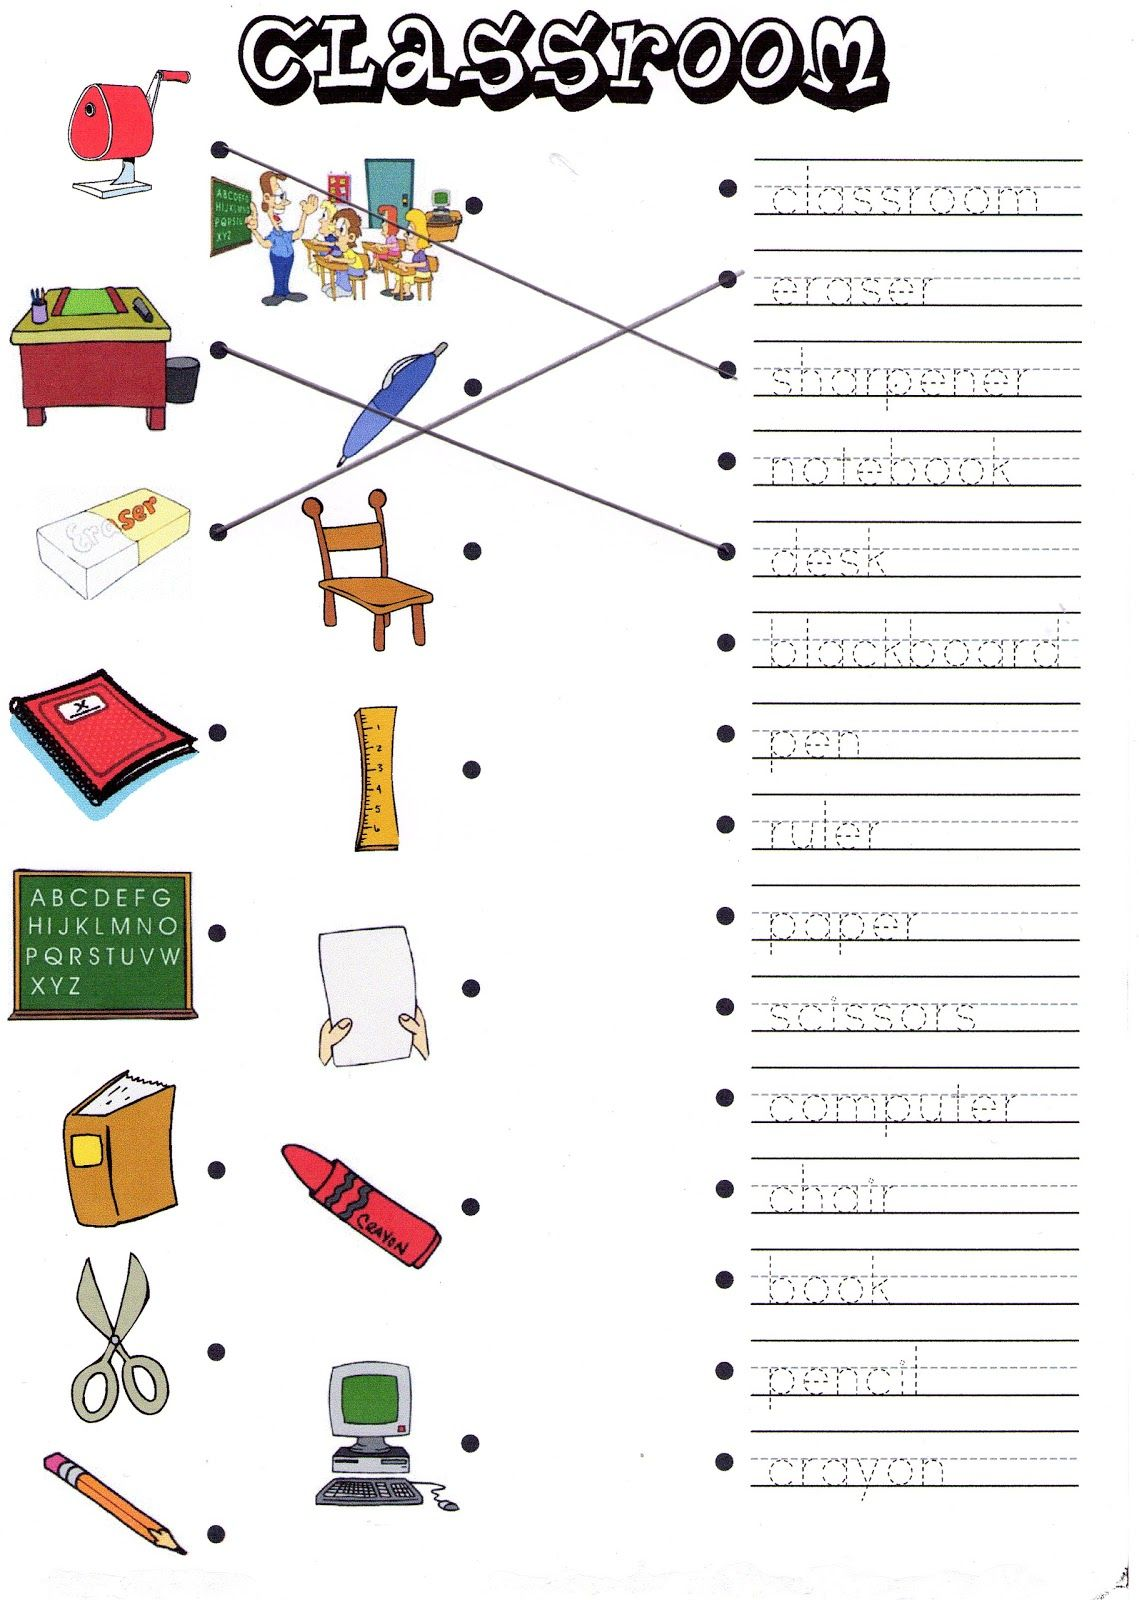 Classroom Objects Worksheets For Kindergarten Pdf Download Them And Try School Supplies For Teachers Kindergarten Worksheets School Supplies List Elementary [ 1600 x 1139 Pixel ]